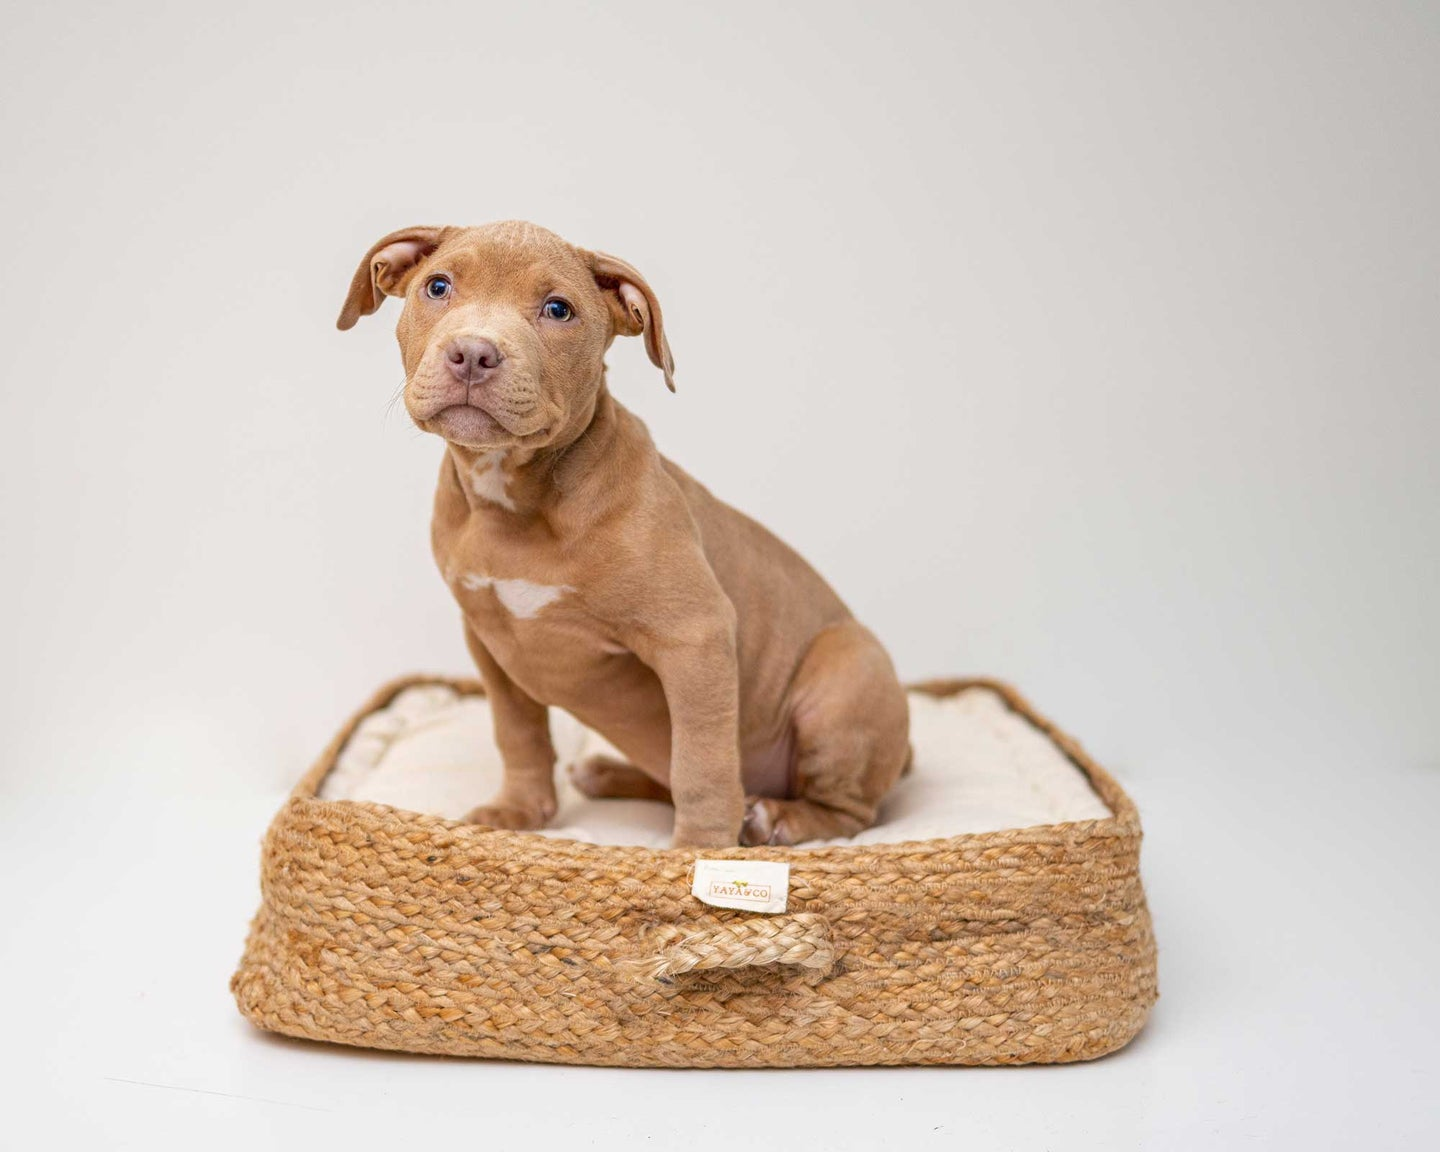 Adorable puppy in a dog bed